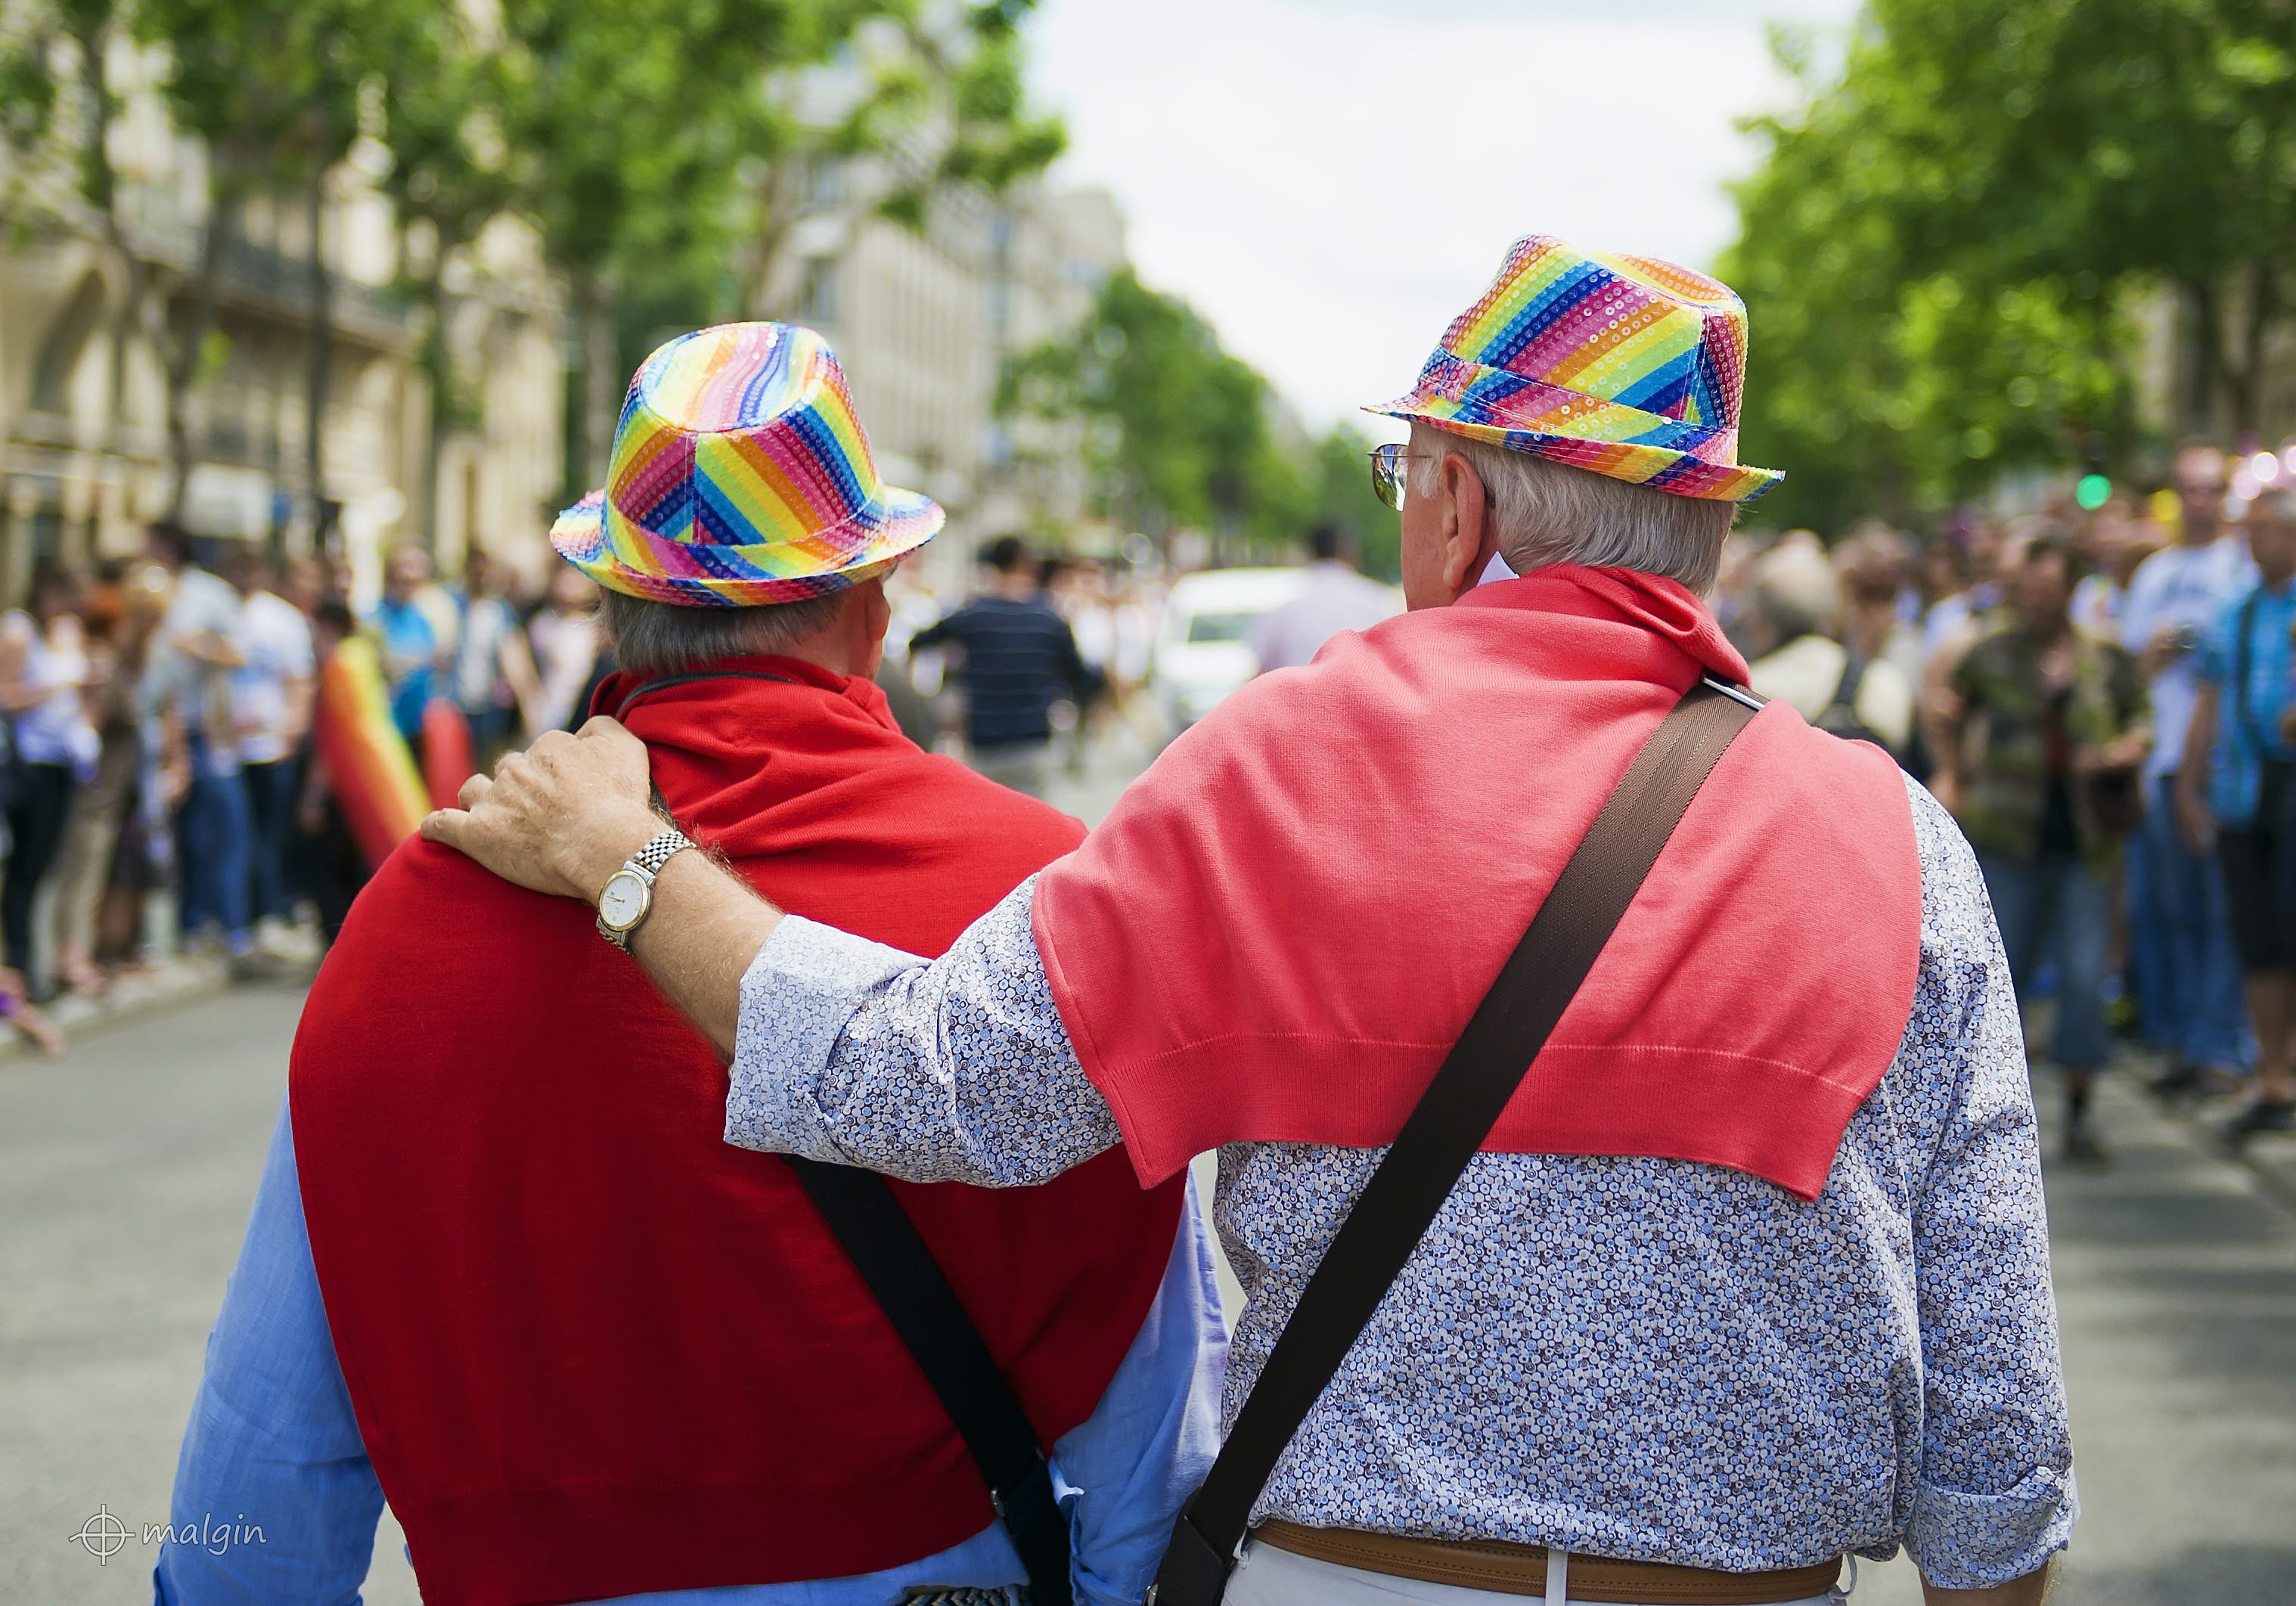 Two men viewed from behind. They're walking along together, one with his arm around the other. Both have red jumpers slung over their shoulders and are wearing rainbow hats